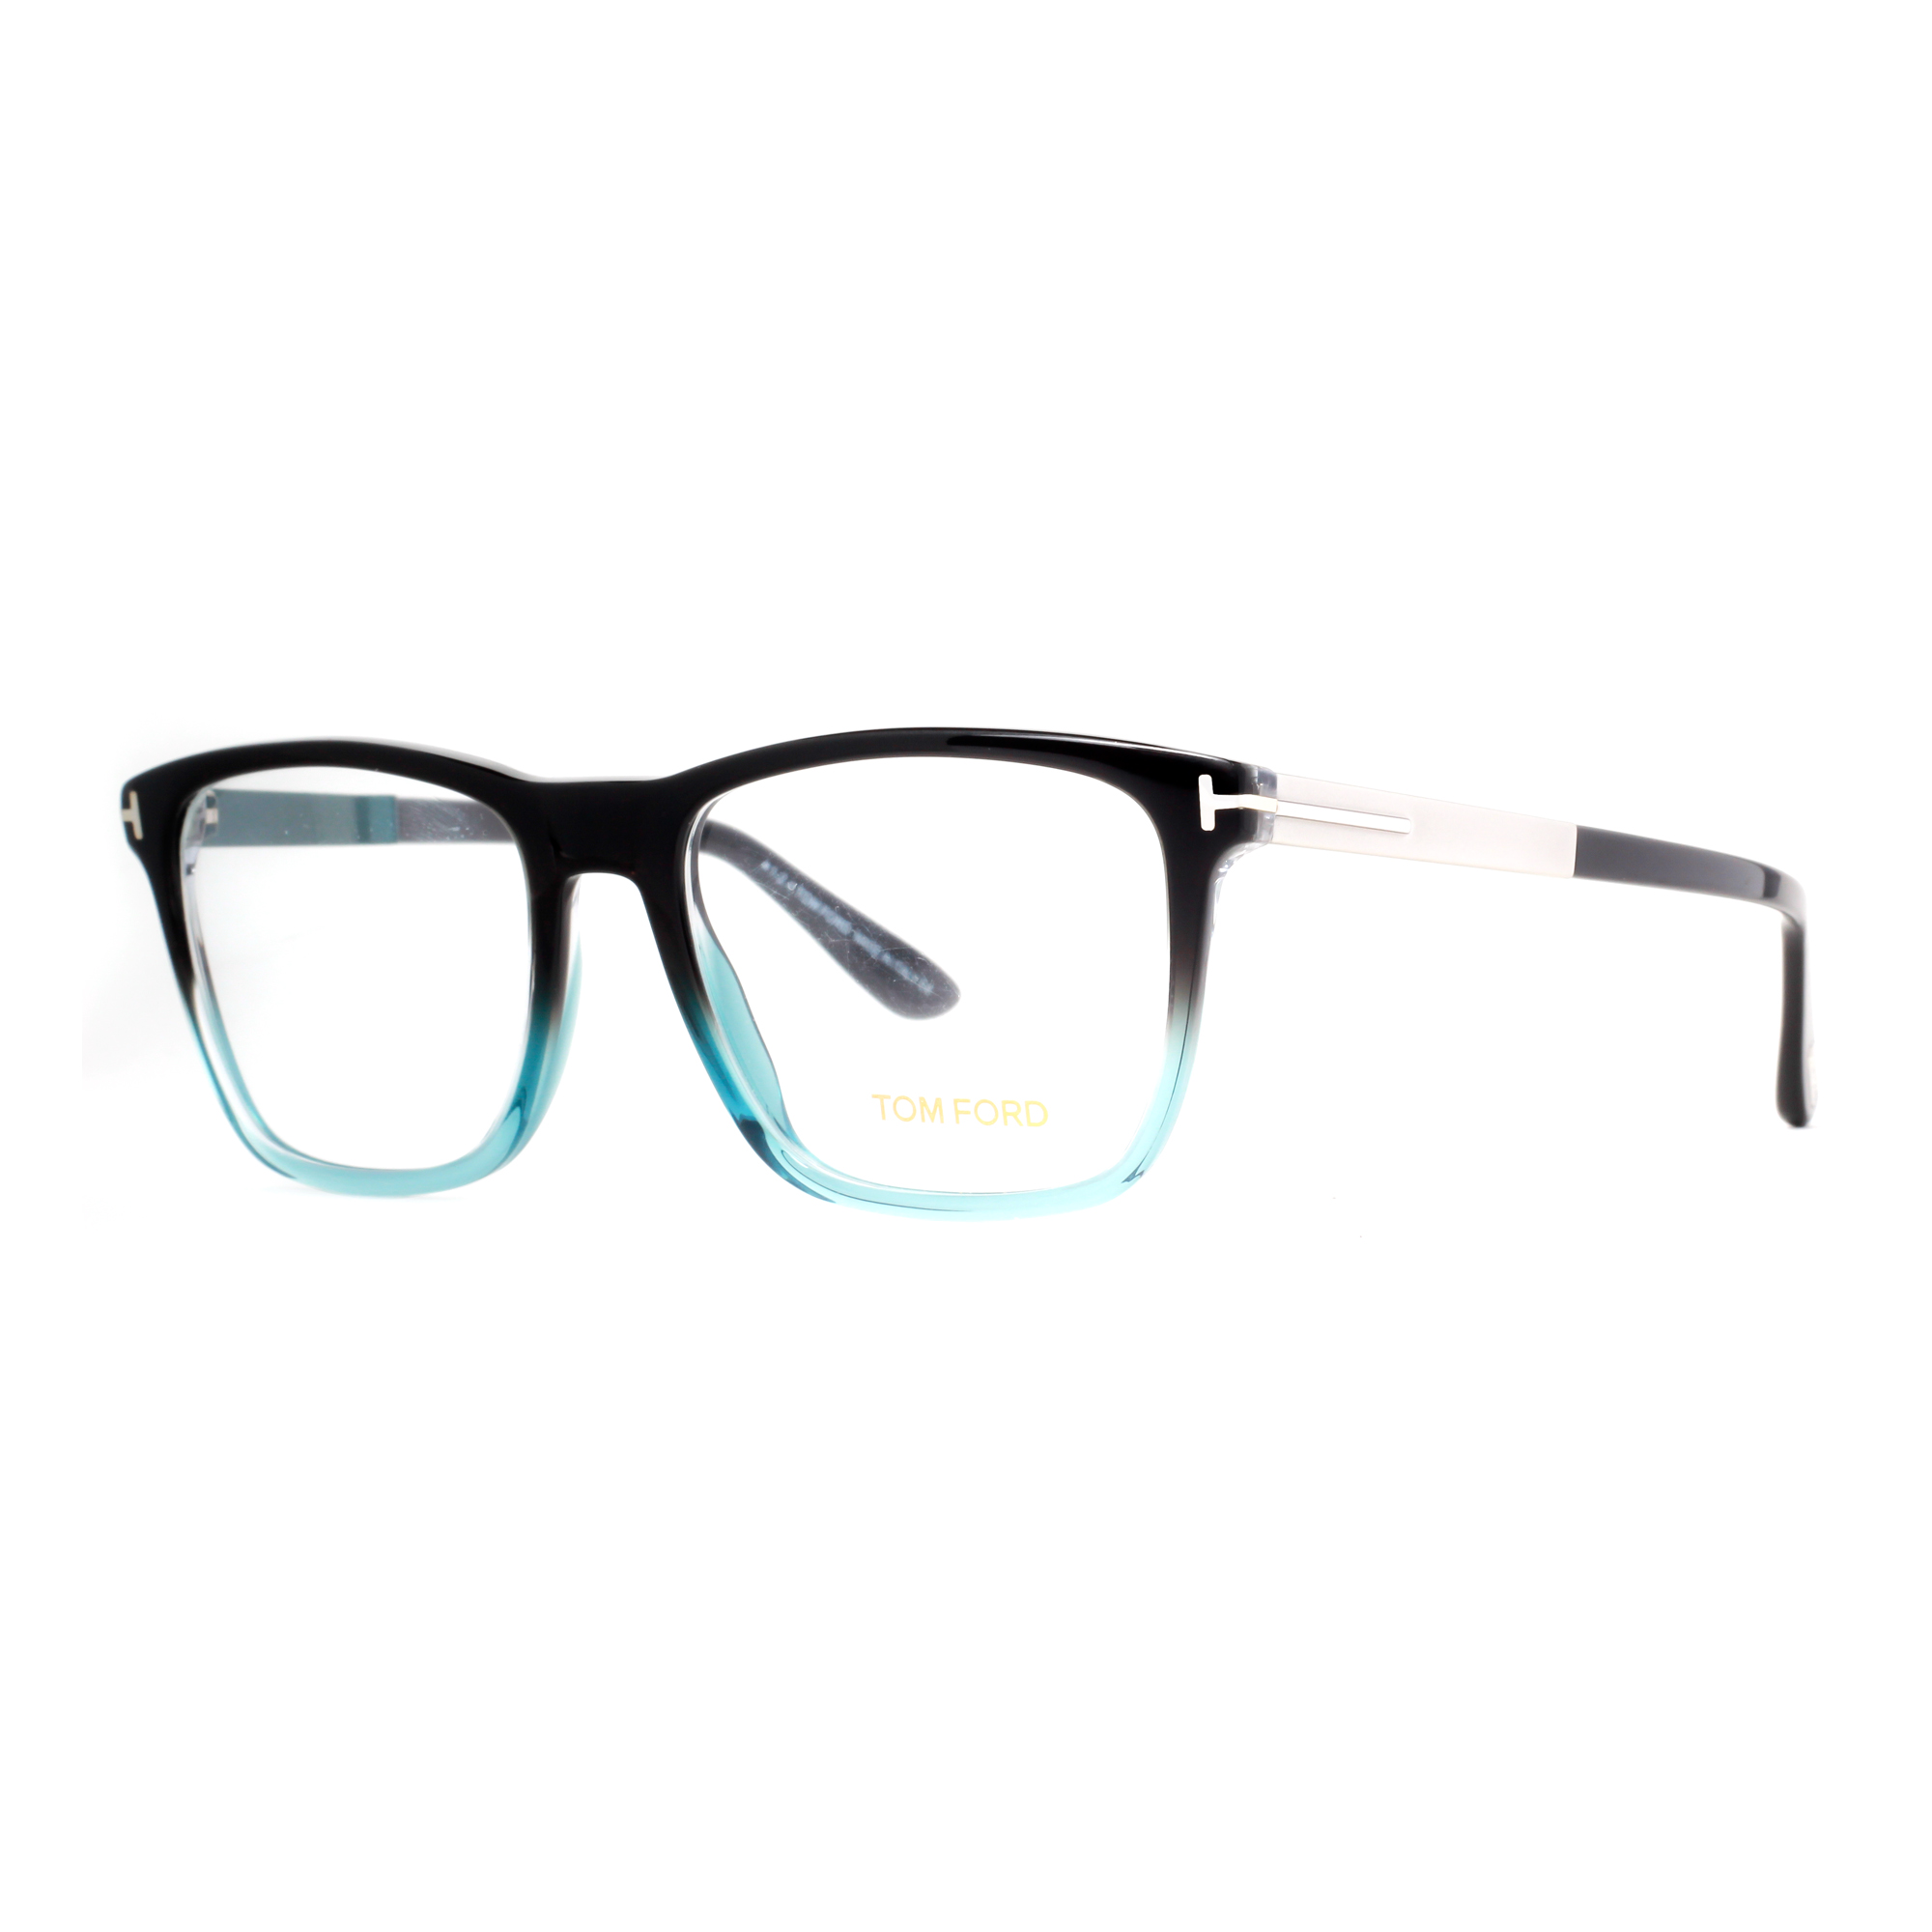 Tom Ford TF 5351 05A Black/Clear Aqua Blue/Gunmetal Mens ...